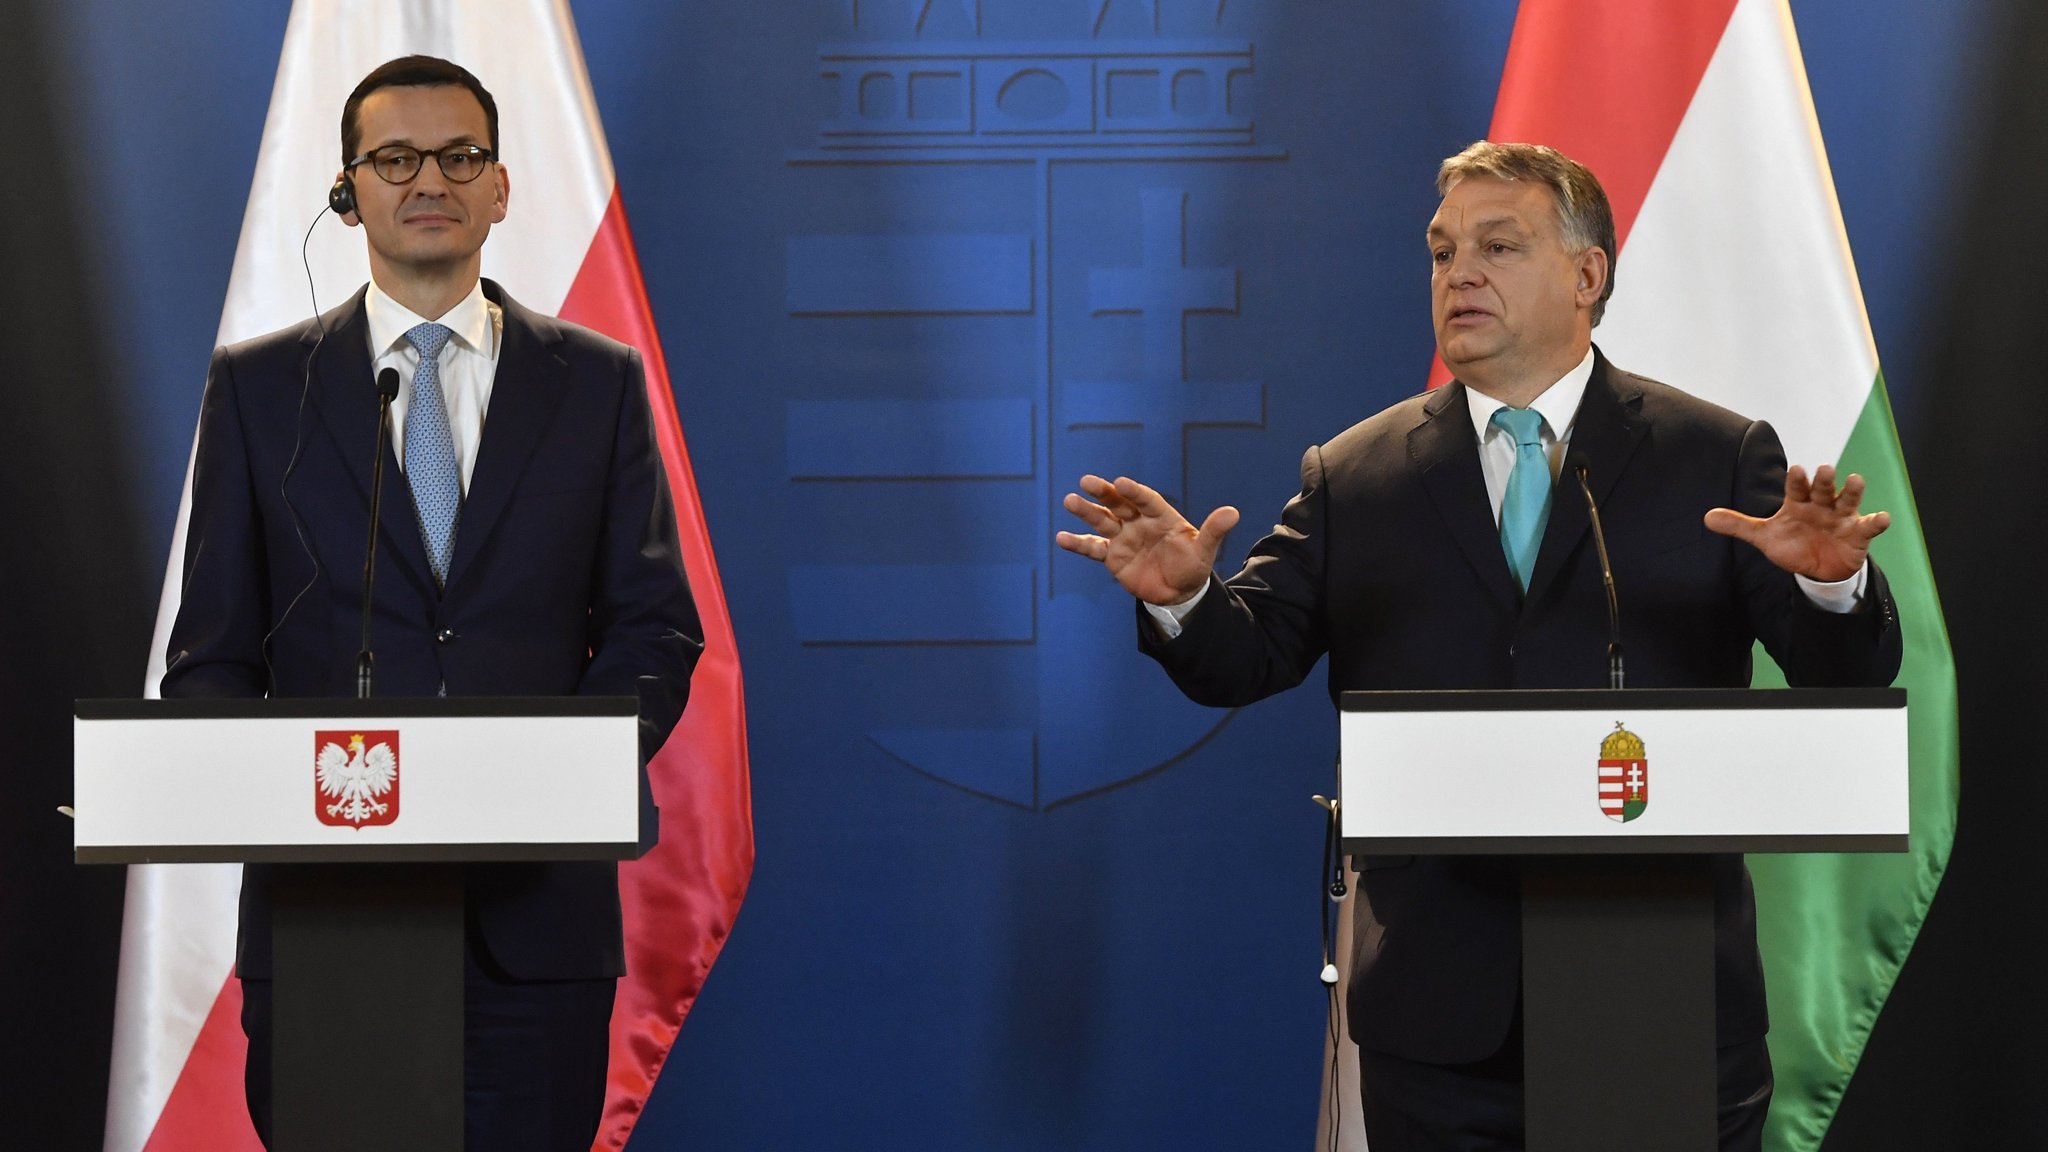 Hungary and Poland fight corner together in EU clash